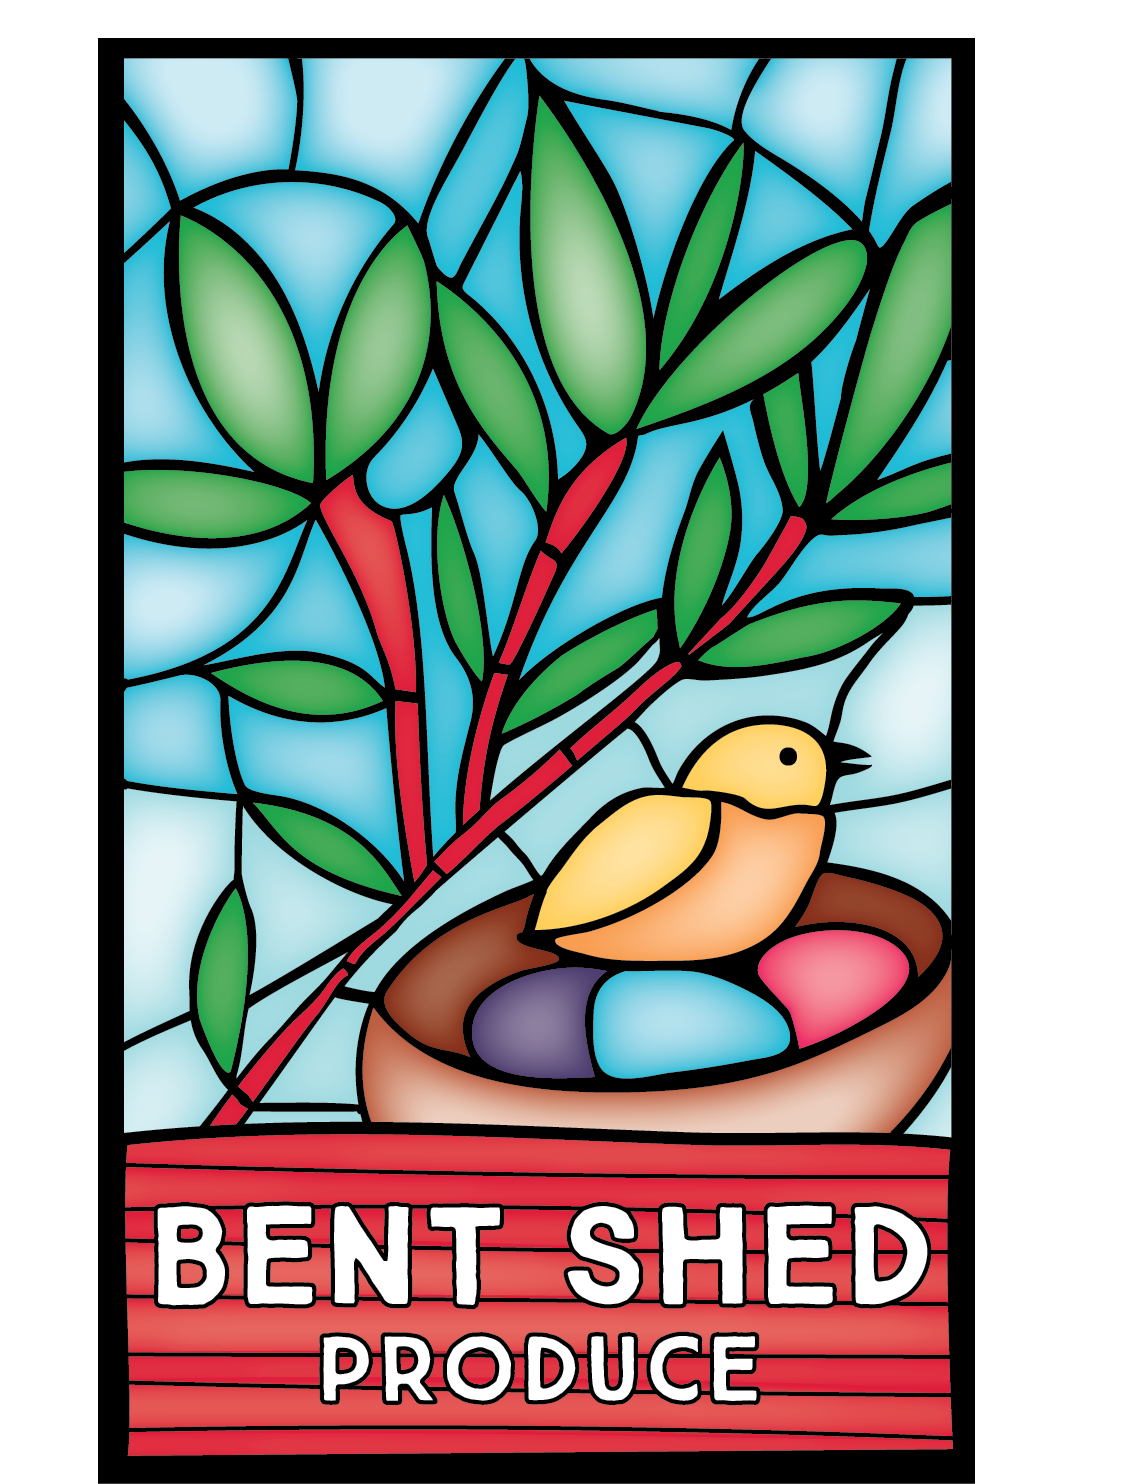 Bent Shed Produce image